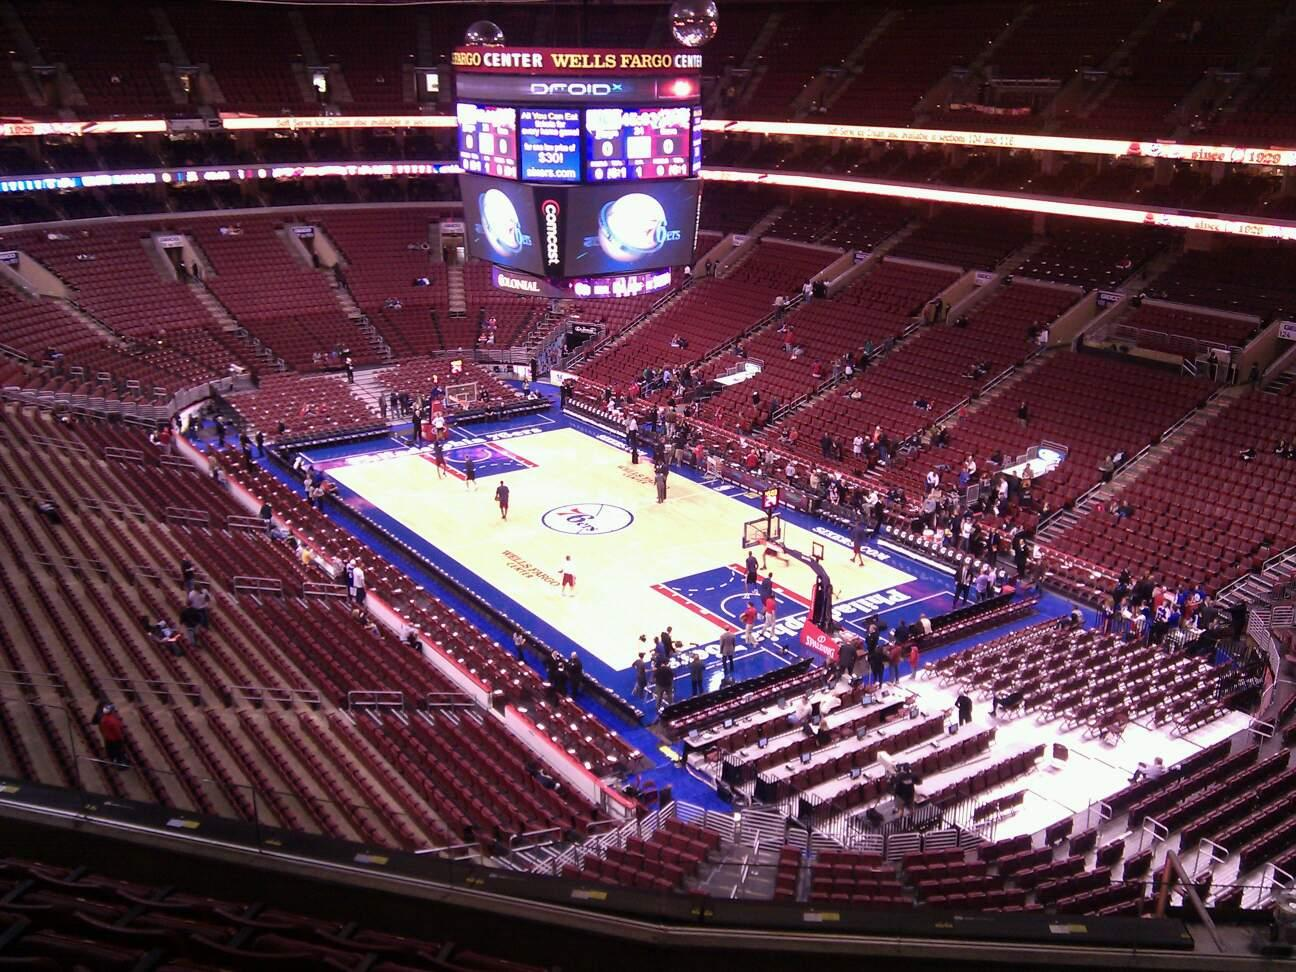 Wells Fargo Center Section 218 Row 7 Seat 7